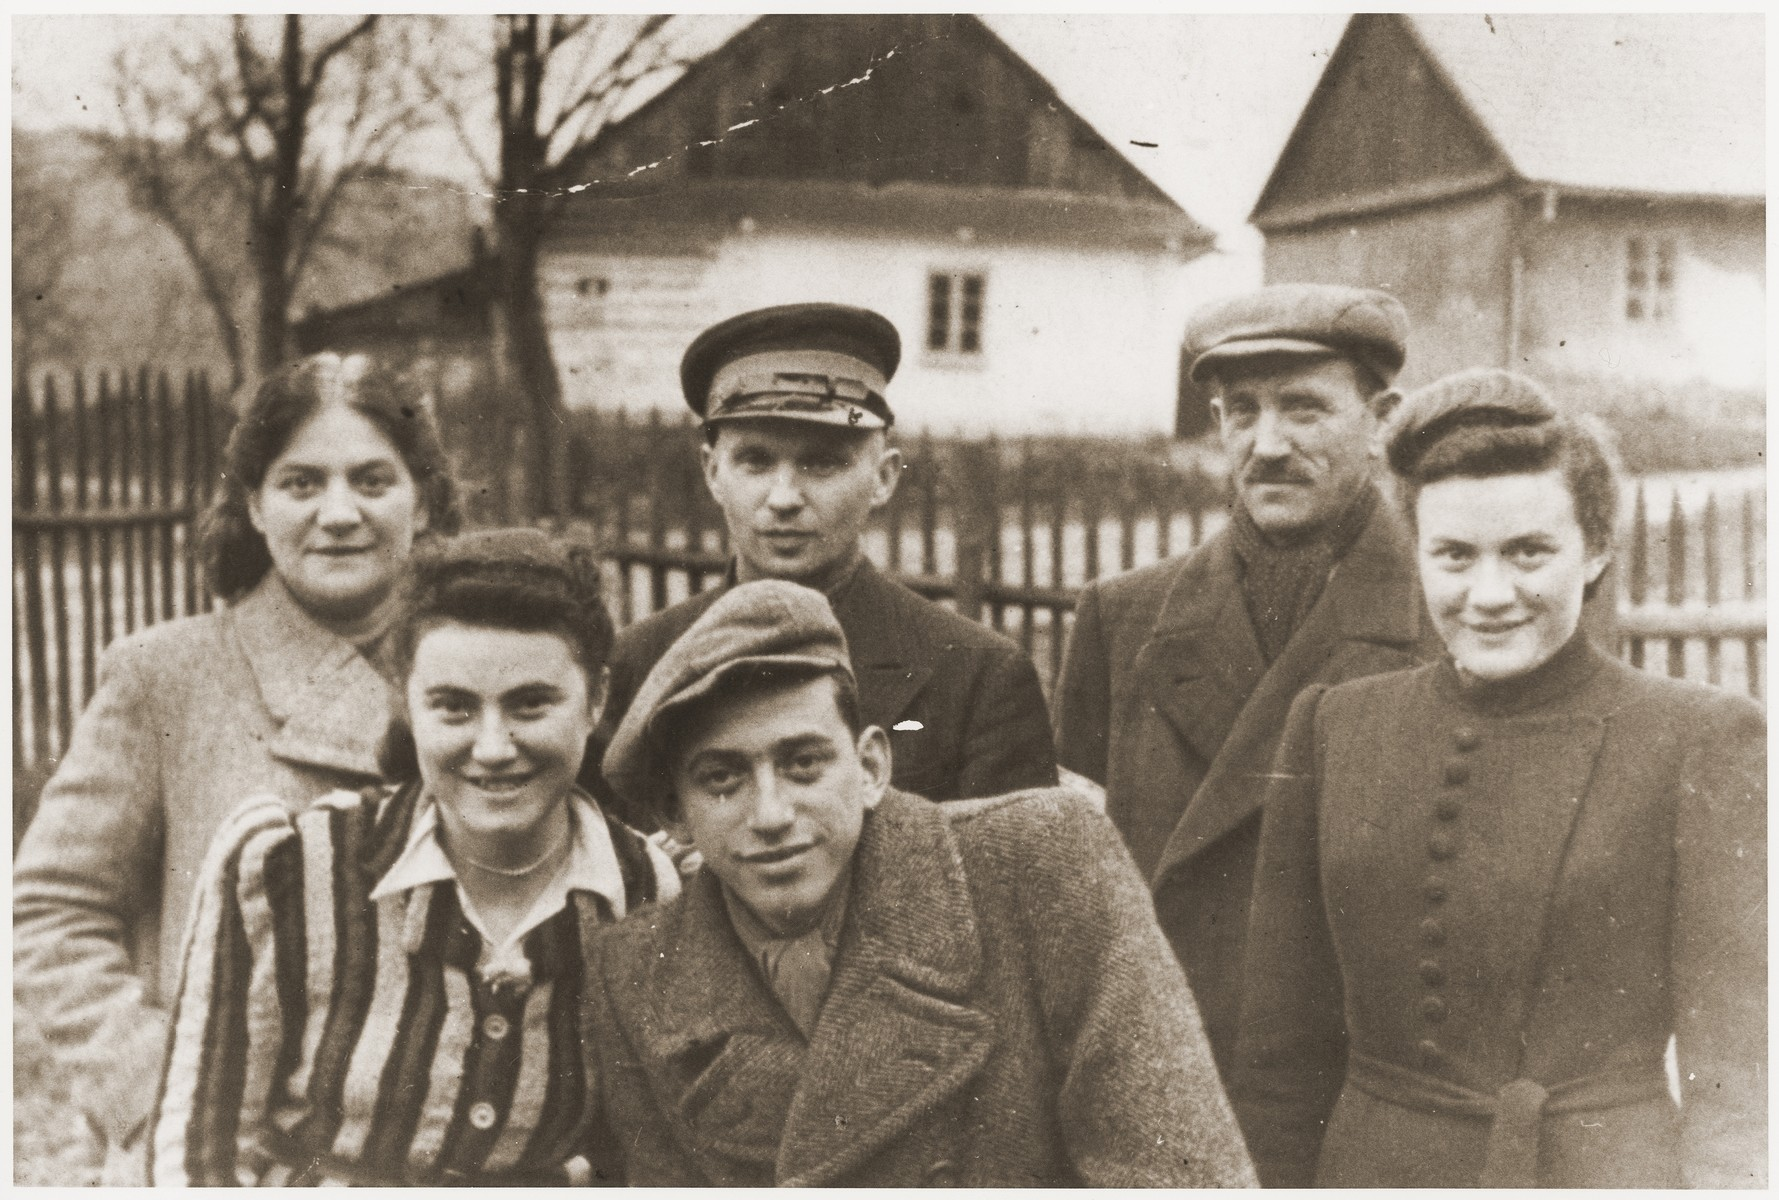 Group portrait of young Jewish men and women in the Wisnicz Nowy ghetto.